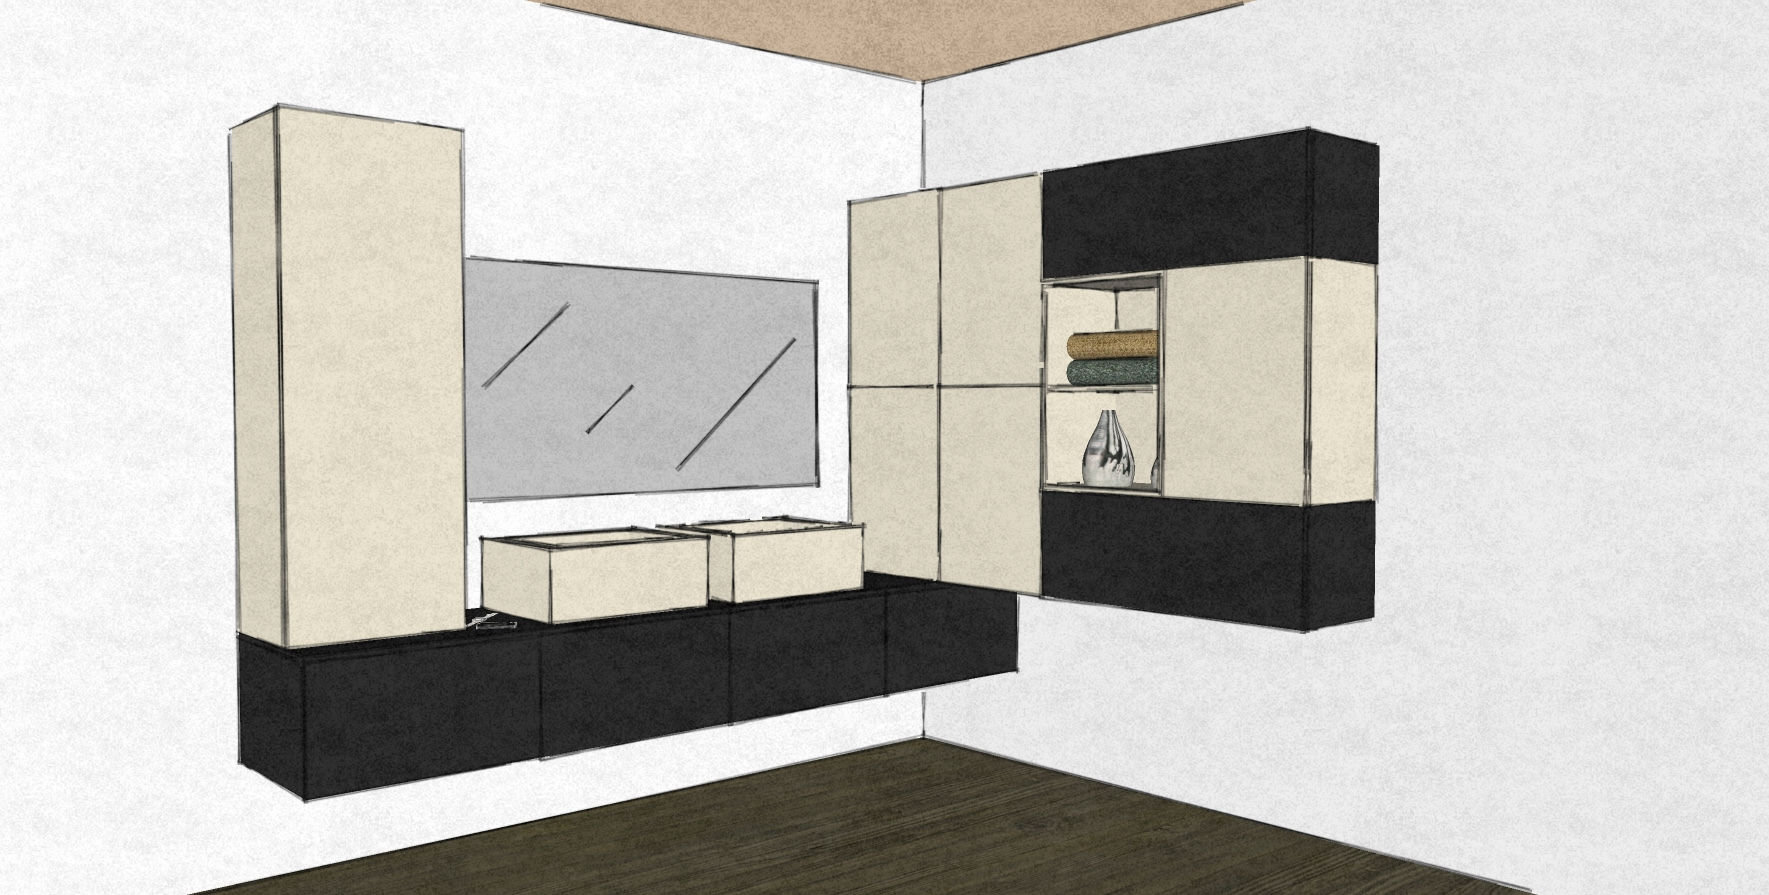 D35 bathroom design wall hung cabinets black and white.jpg